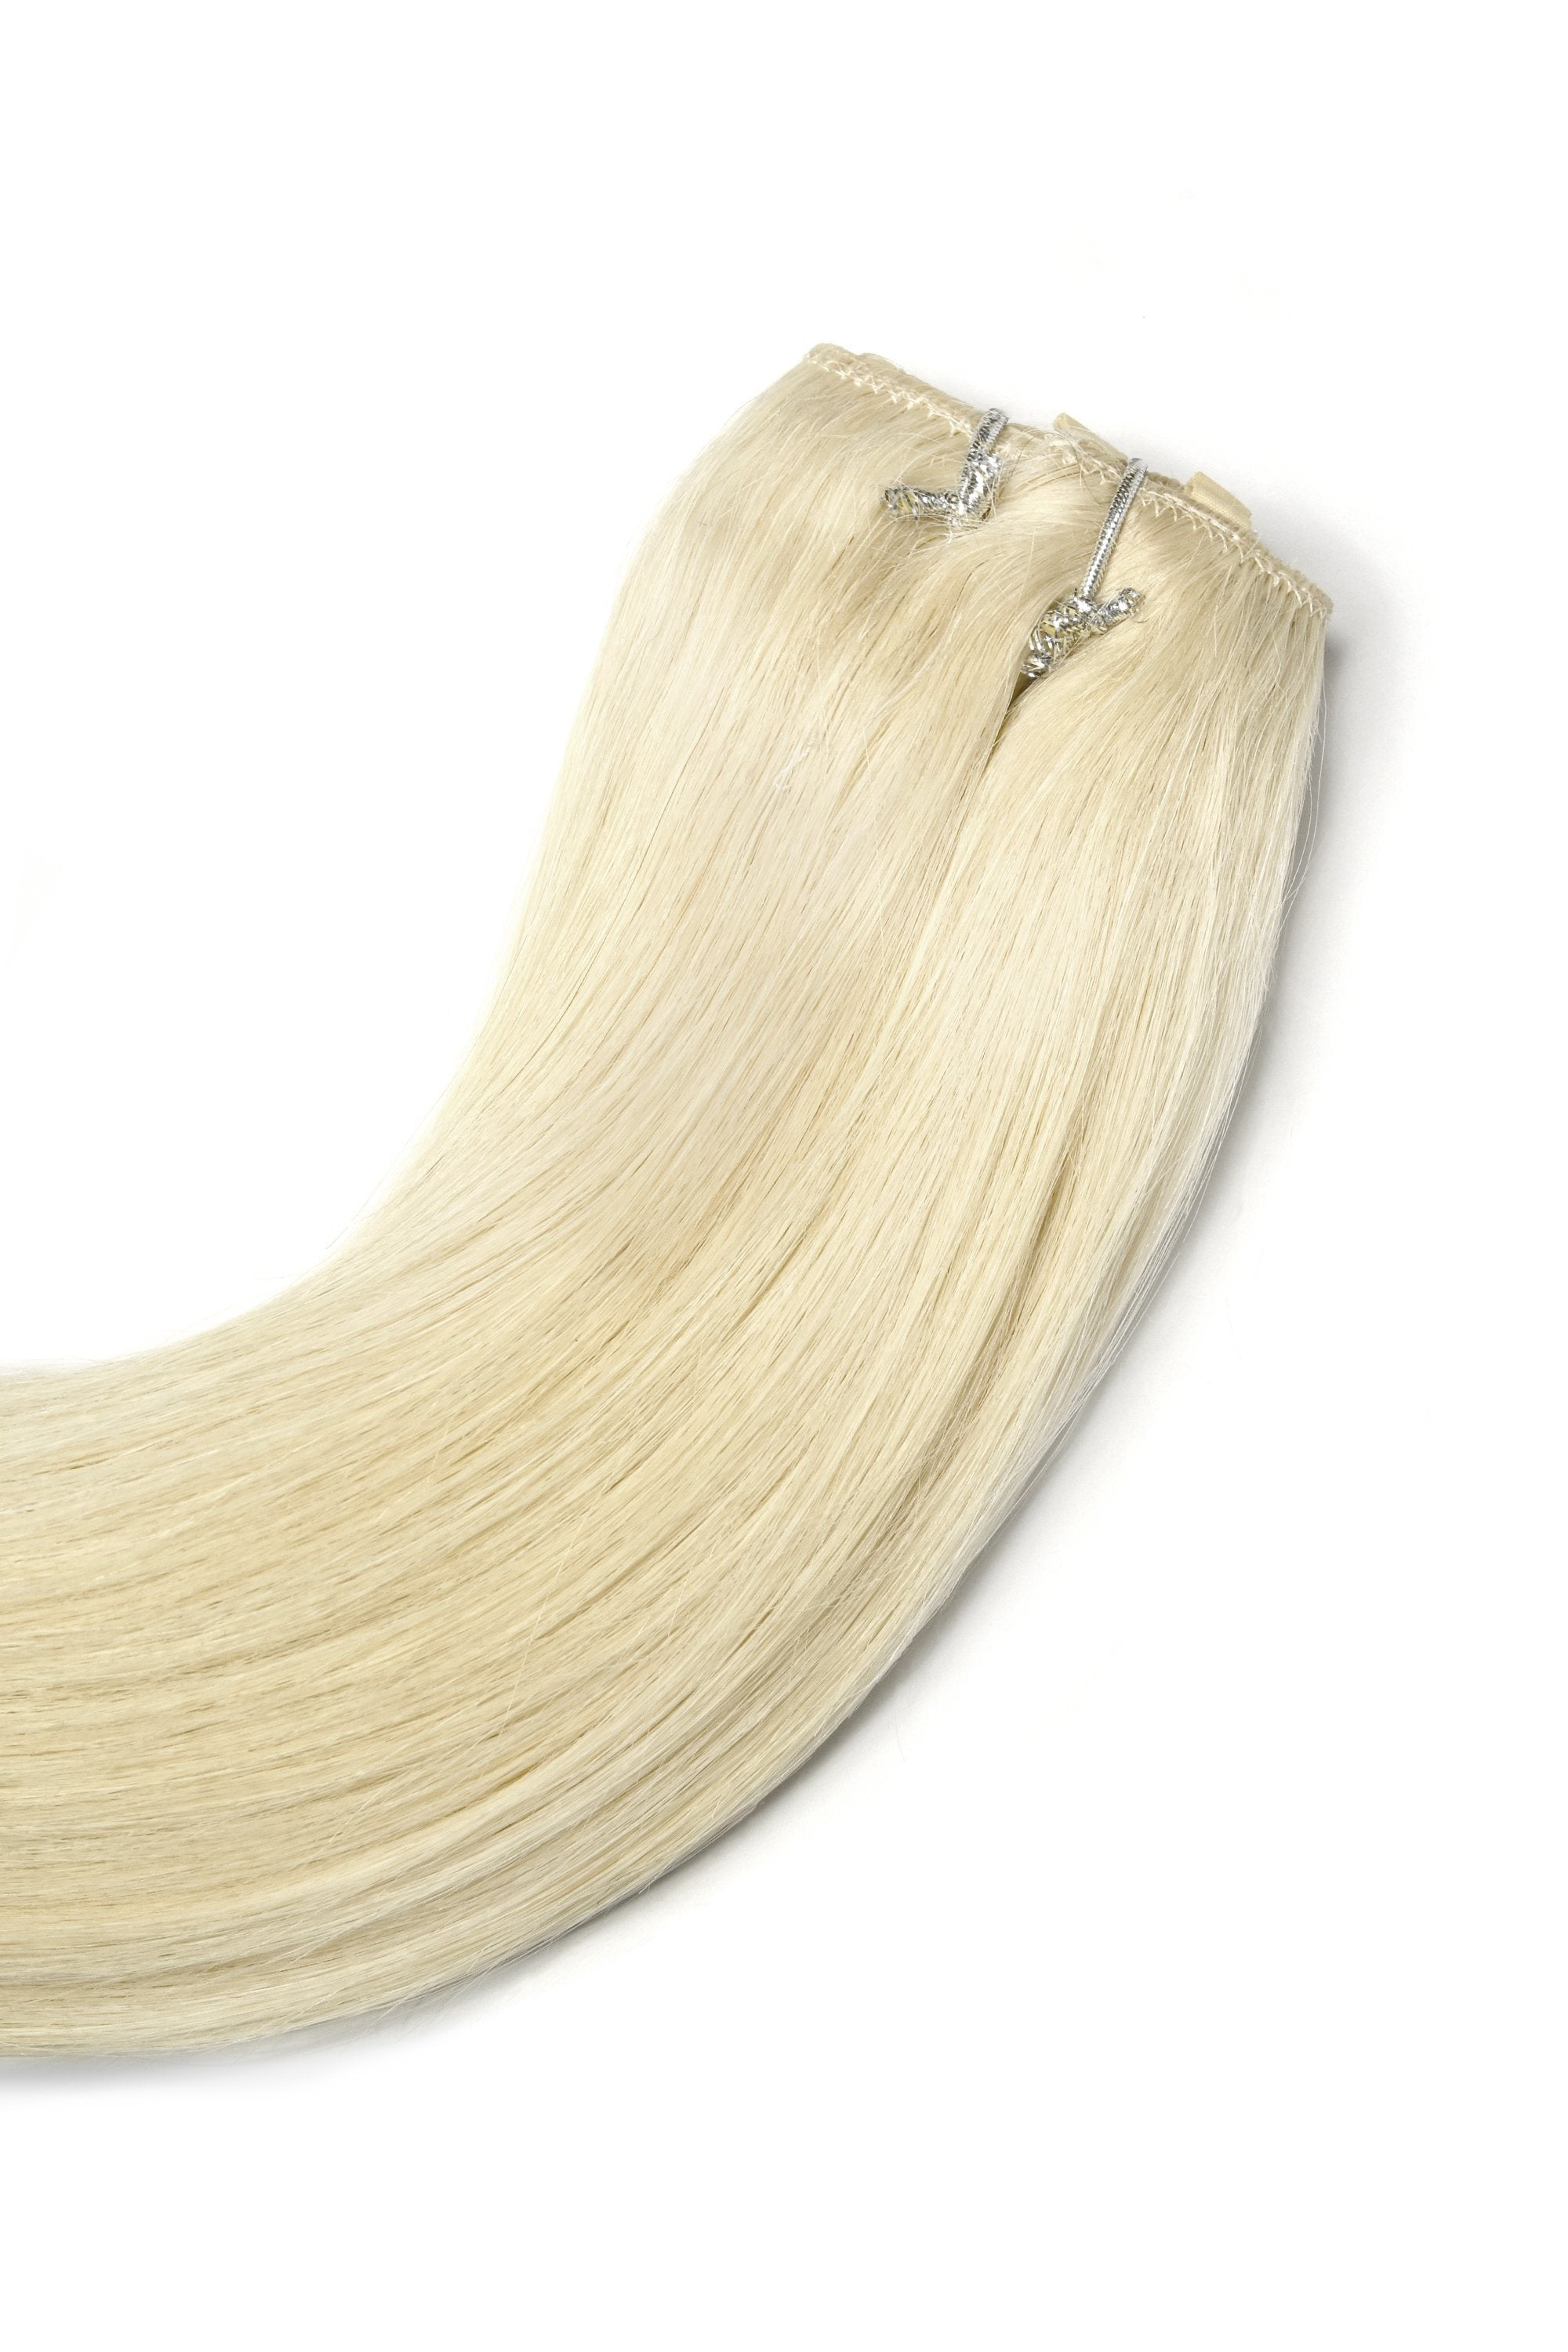 one_piece_human_hair_extensions